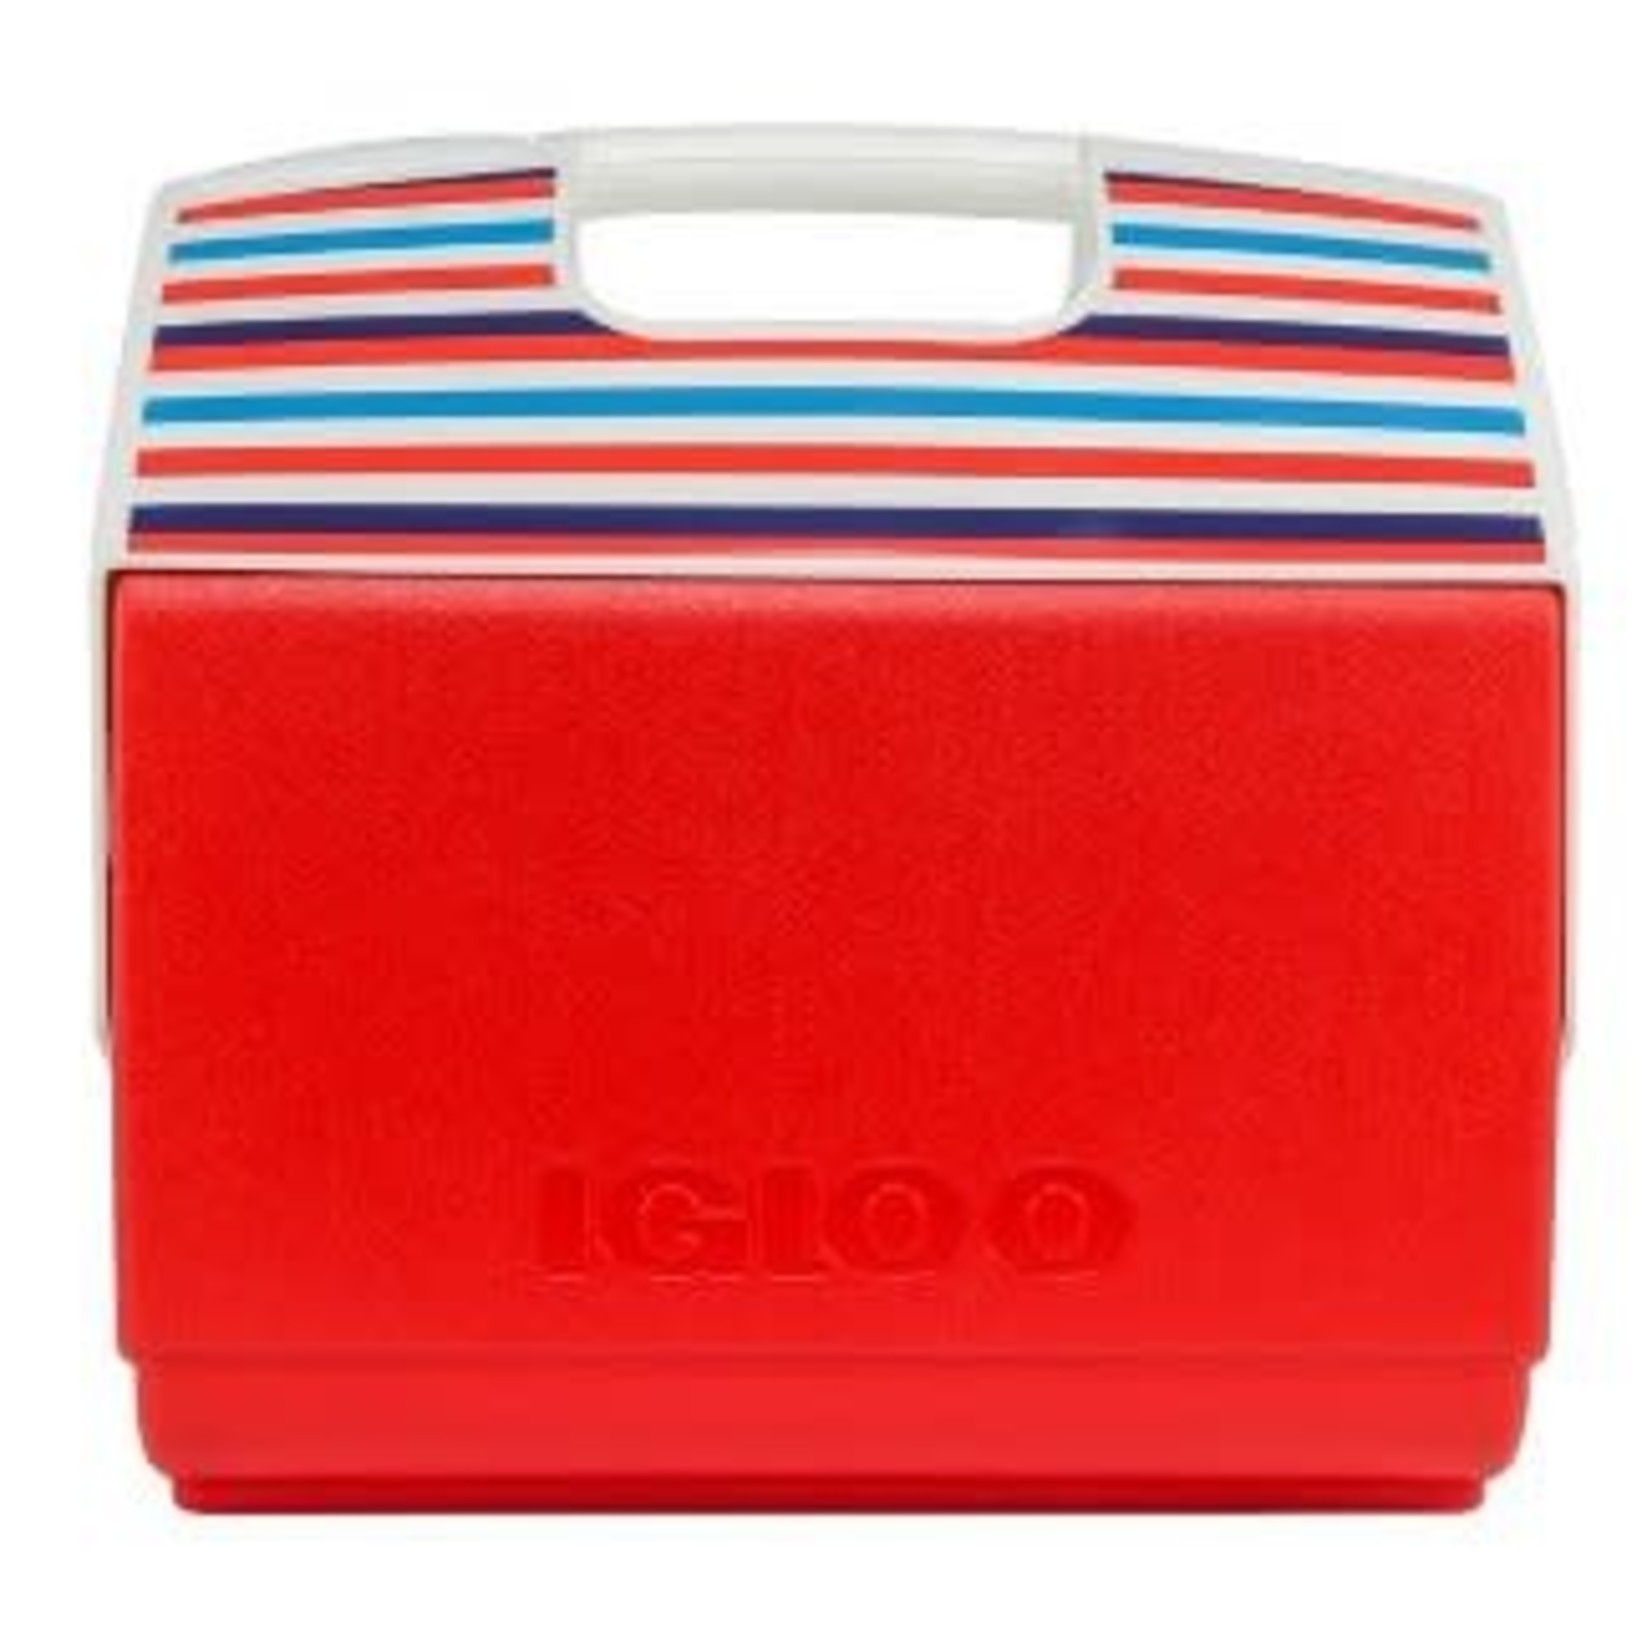 Igloo Playmate Elite 16qt Cooler with Decorated Lid